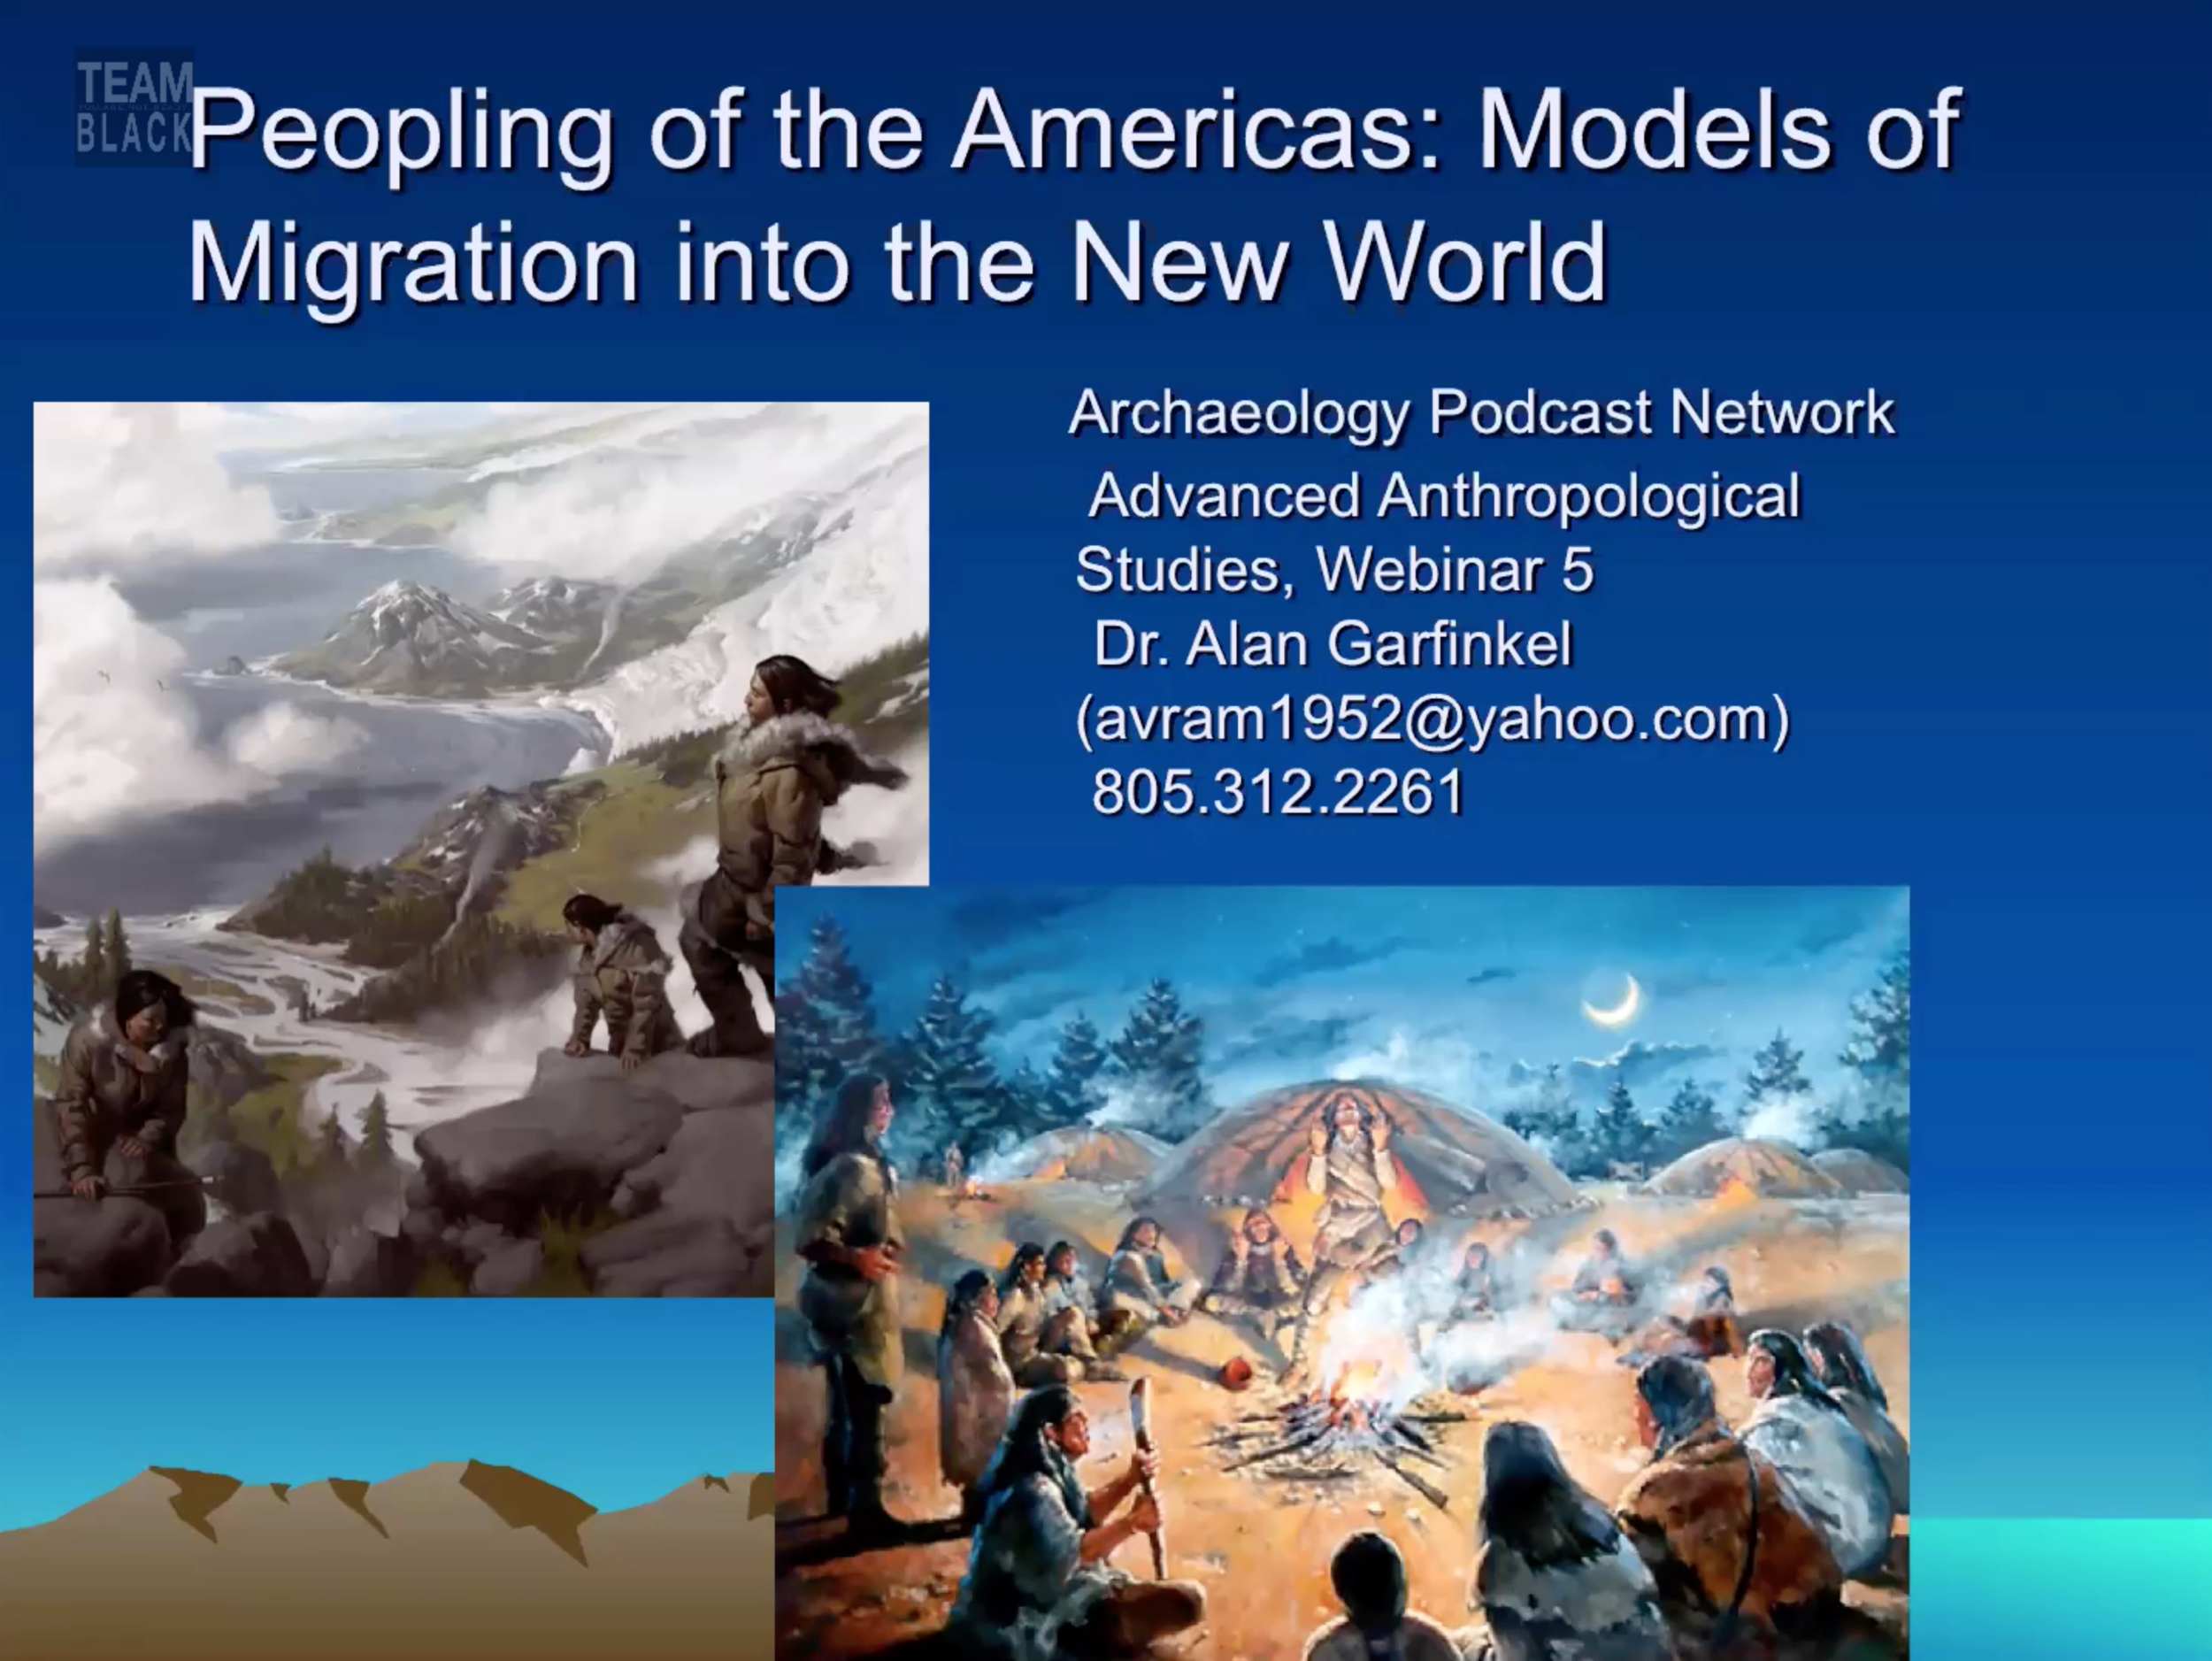 Peopling of the Americas: Models of Migration into the New World, Dr. Alan Garfinkel   This presentation provides a unique insiders' view of breakthrough research on Peopling of the Americas including the latest research, newest findings, revelatory theories, cutting edge discoveries, and alternative models.  Through compelling visual aids and a dynamic lecture you will personally connect with one of most recognized and scholarly researchers known worldwide for his research on indigenous prehistory in the Americas.